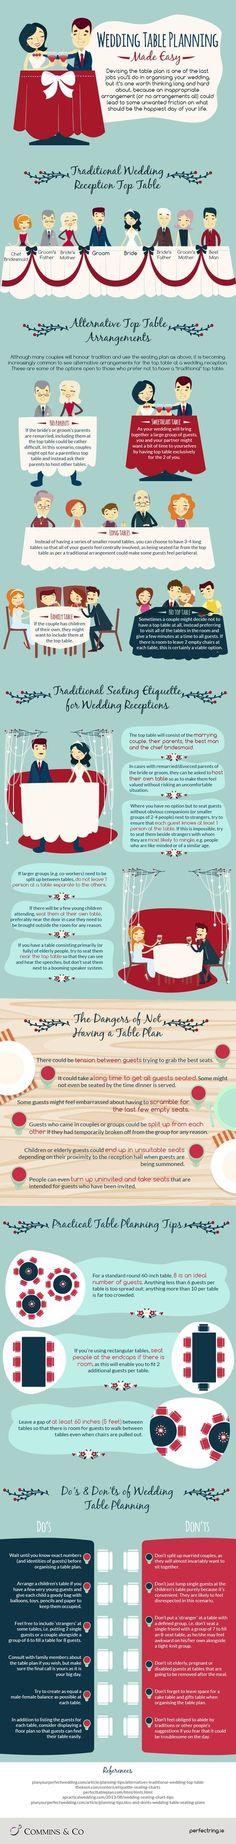 This cool infographic answers every question you have about planning your wedding table seating arrangements. #weddingplanninginfographic